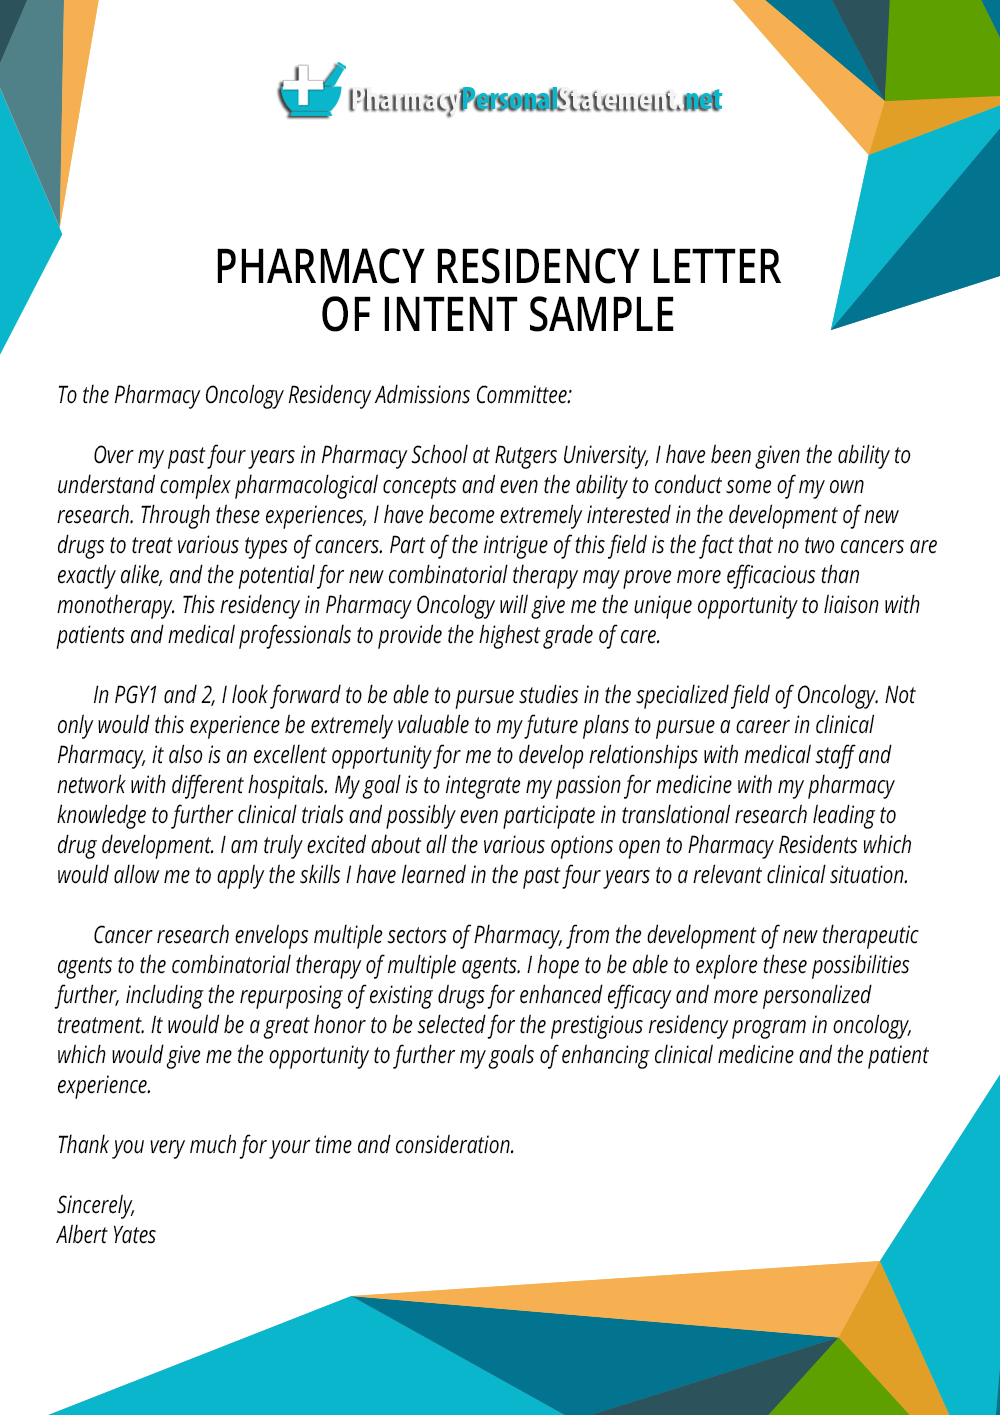 pharmacypersonalstatement net our pharmacy school pharmacypersonalstatement net our pharmacy school personal statement writing services pharmacy residency letter of intent writing servic